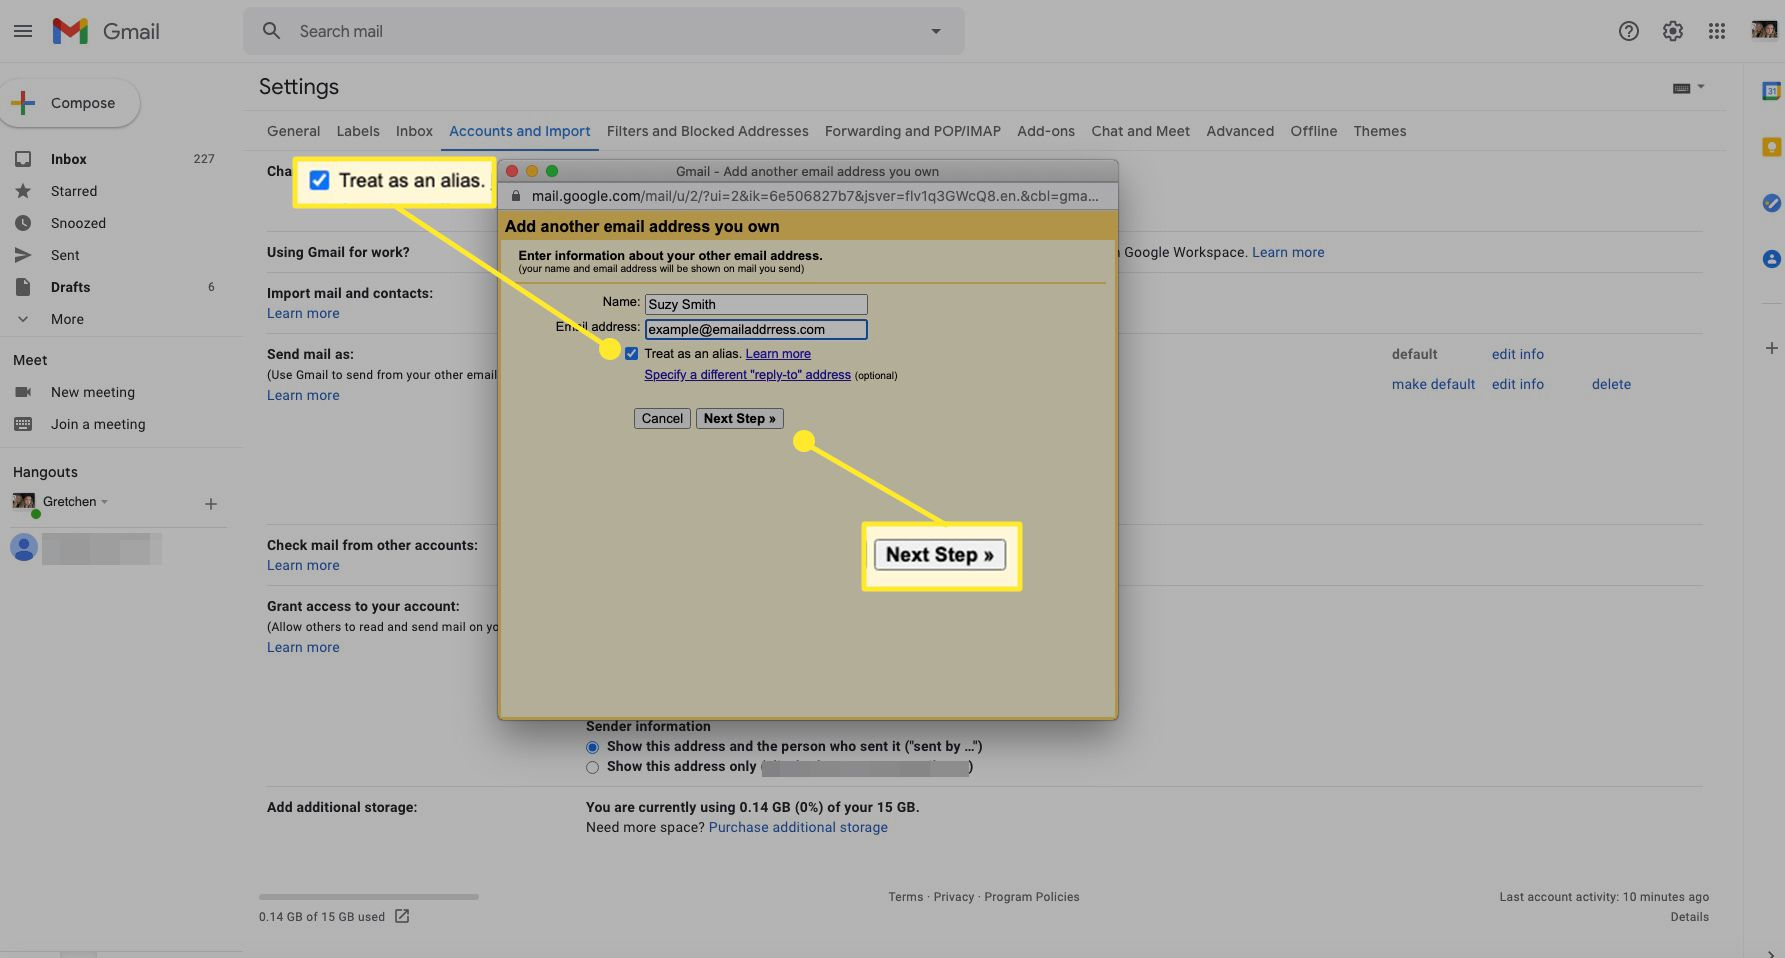 Add email address screen in Gmail with checked box and